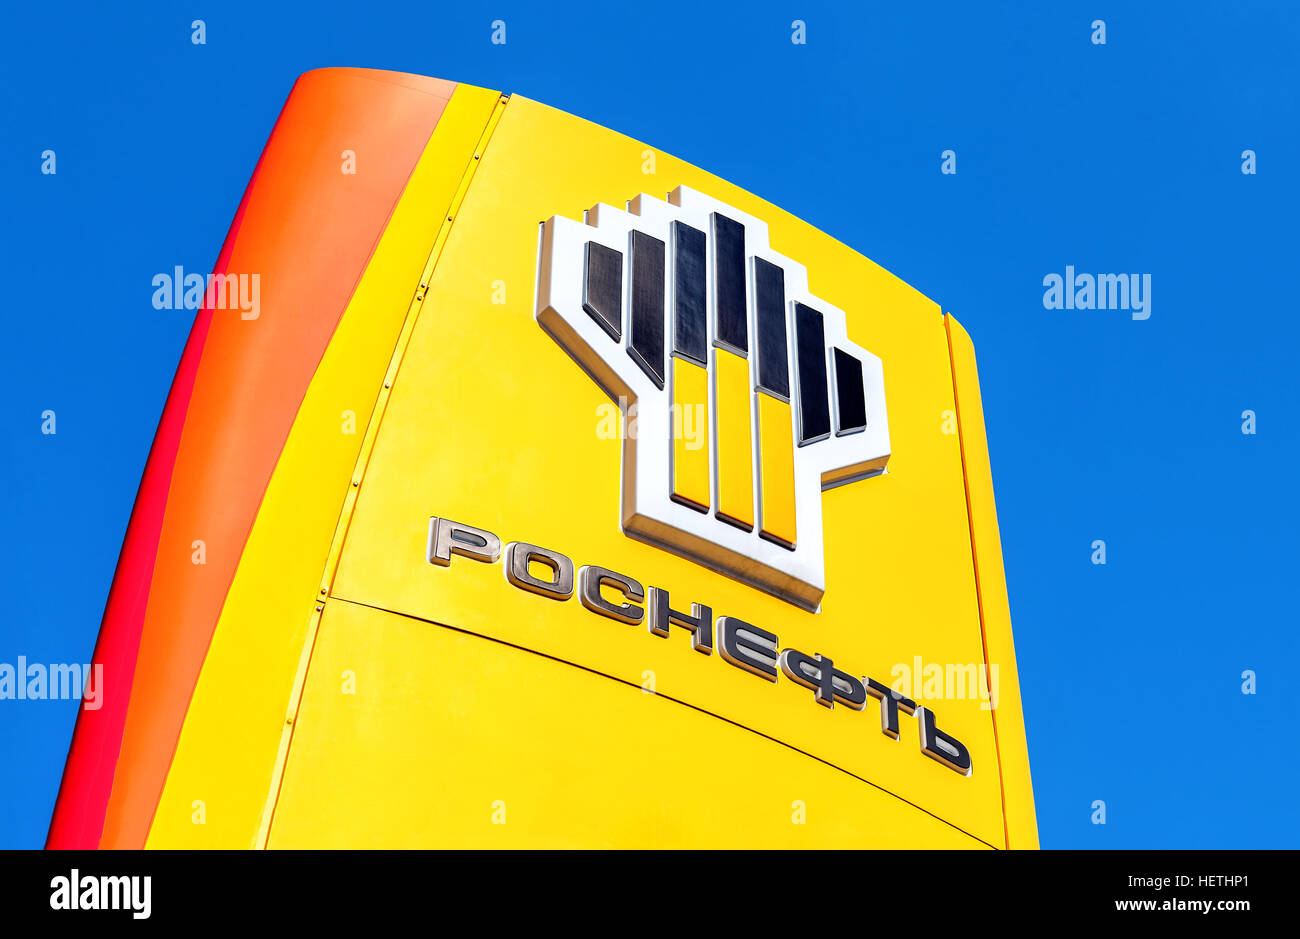 The Emblem Of The Oil Company Rosneft On The Gas Station Rosneft Is